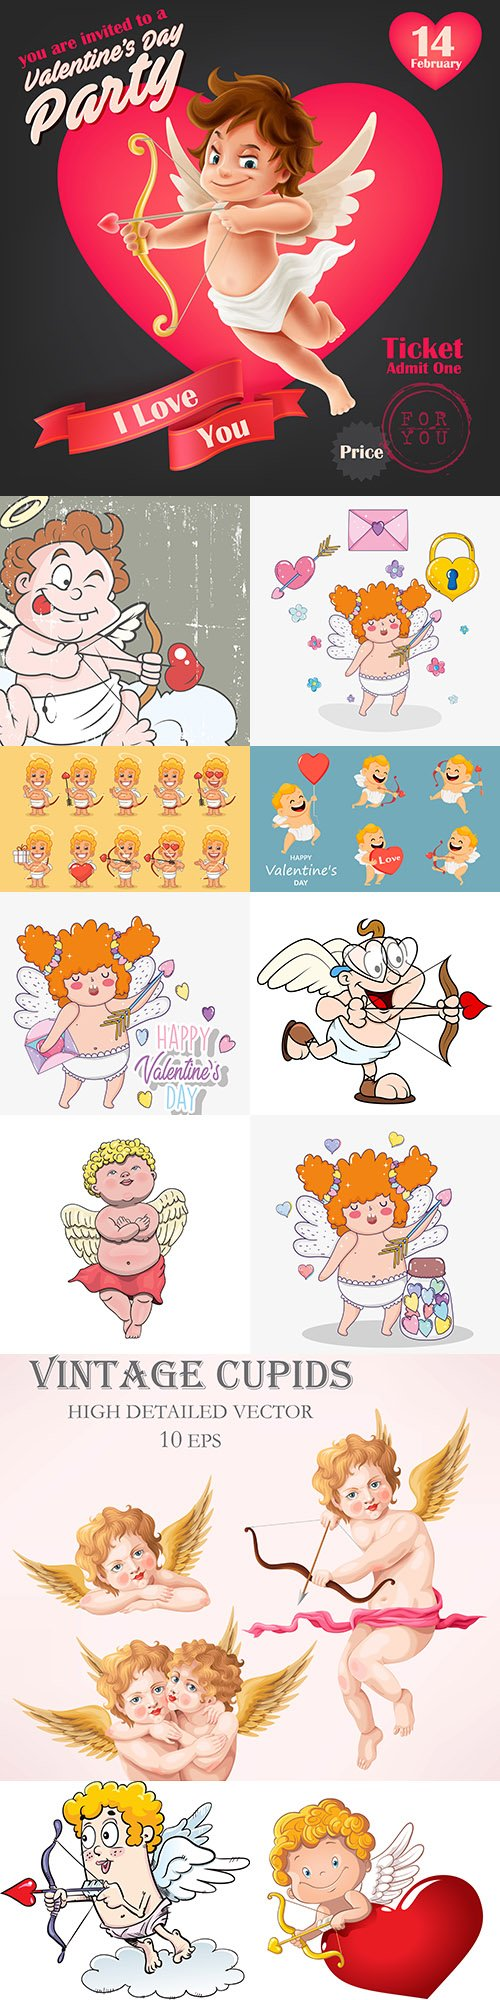 St. Valentine's day romantic cartoon cupid collection 3